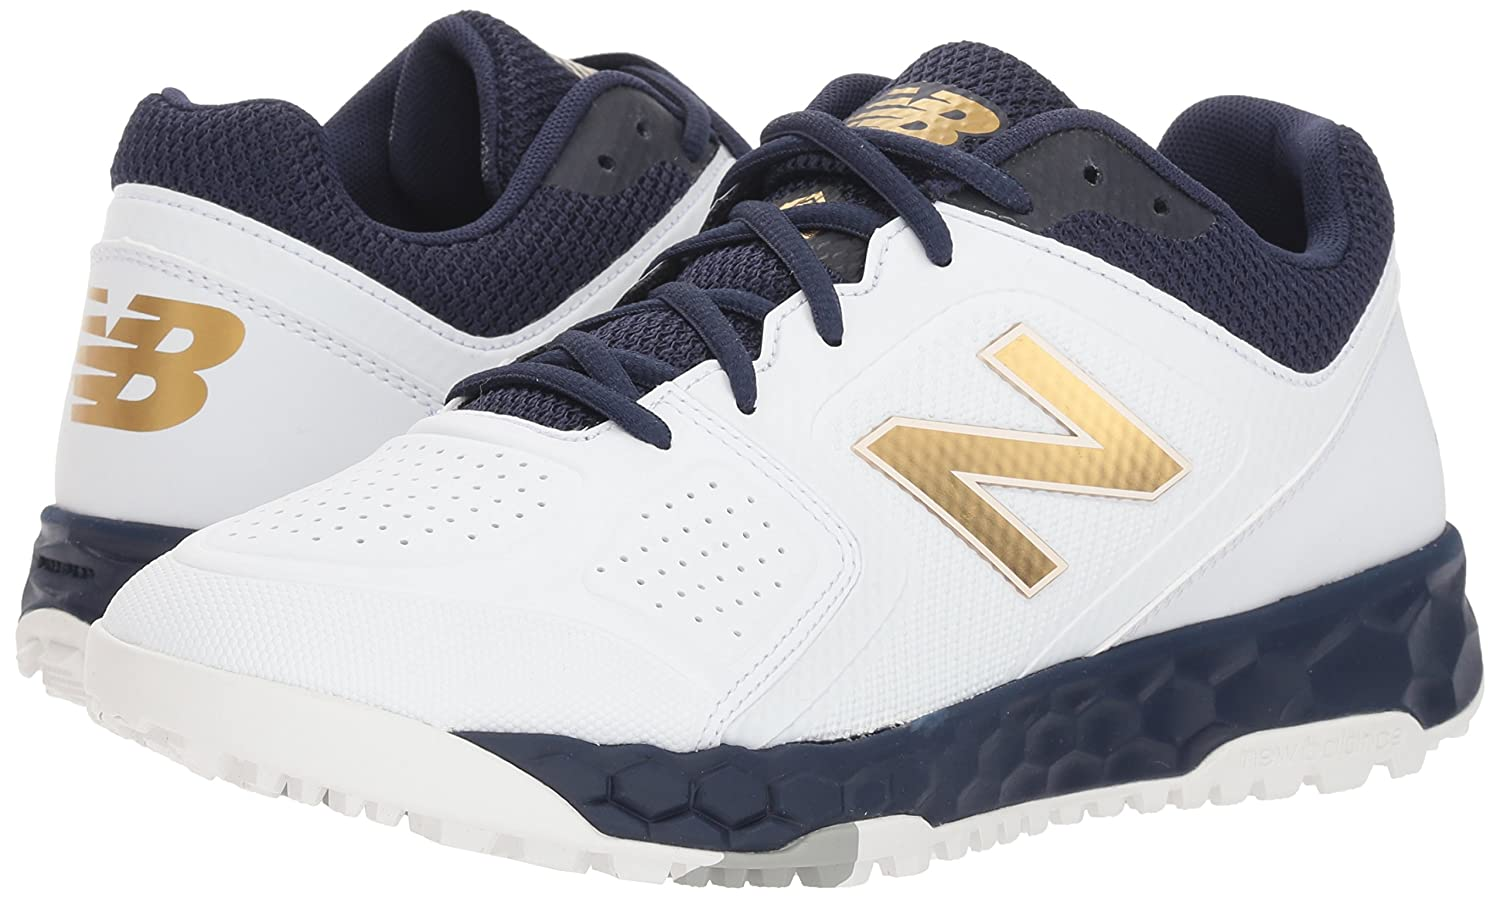 New Balance Women's Shoe Velo V1 Turf Softball Shoe Women's B075R3R9PK 12 W US|Navy/White 4acdfa